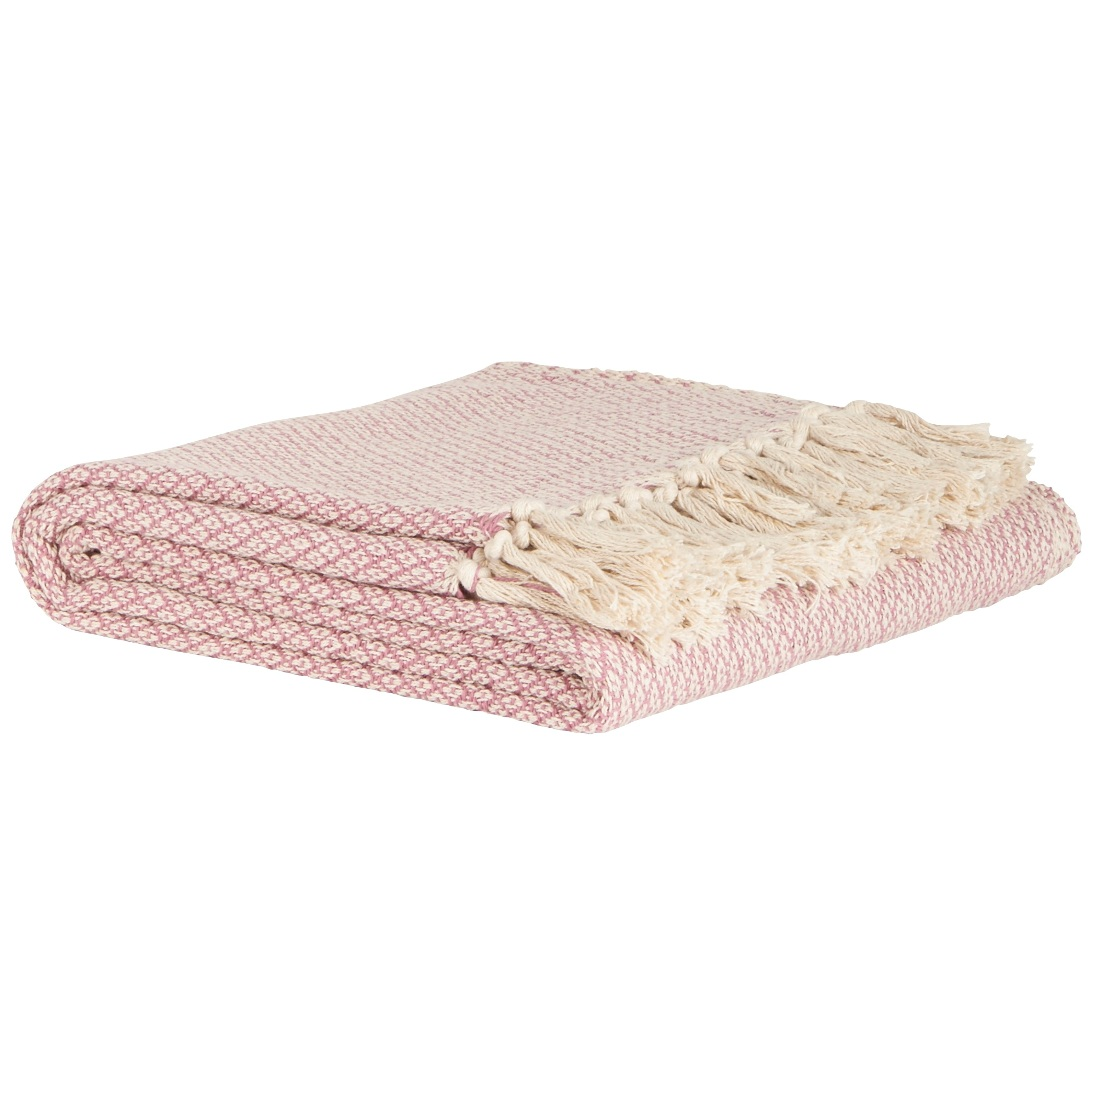 100 Cotton Sofa Bed Light Pink Cream Window Pattern Throw Blanket